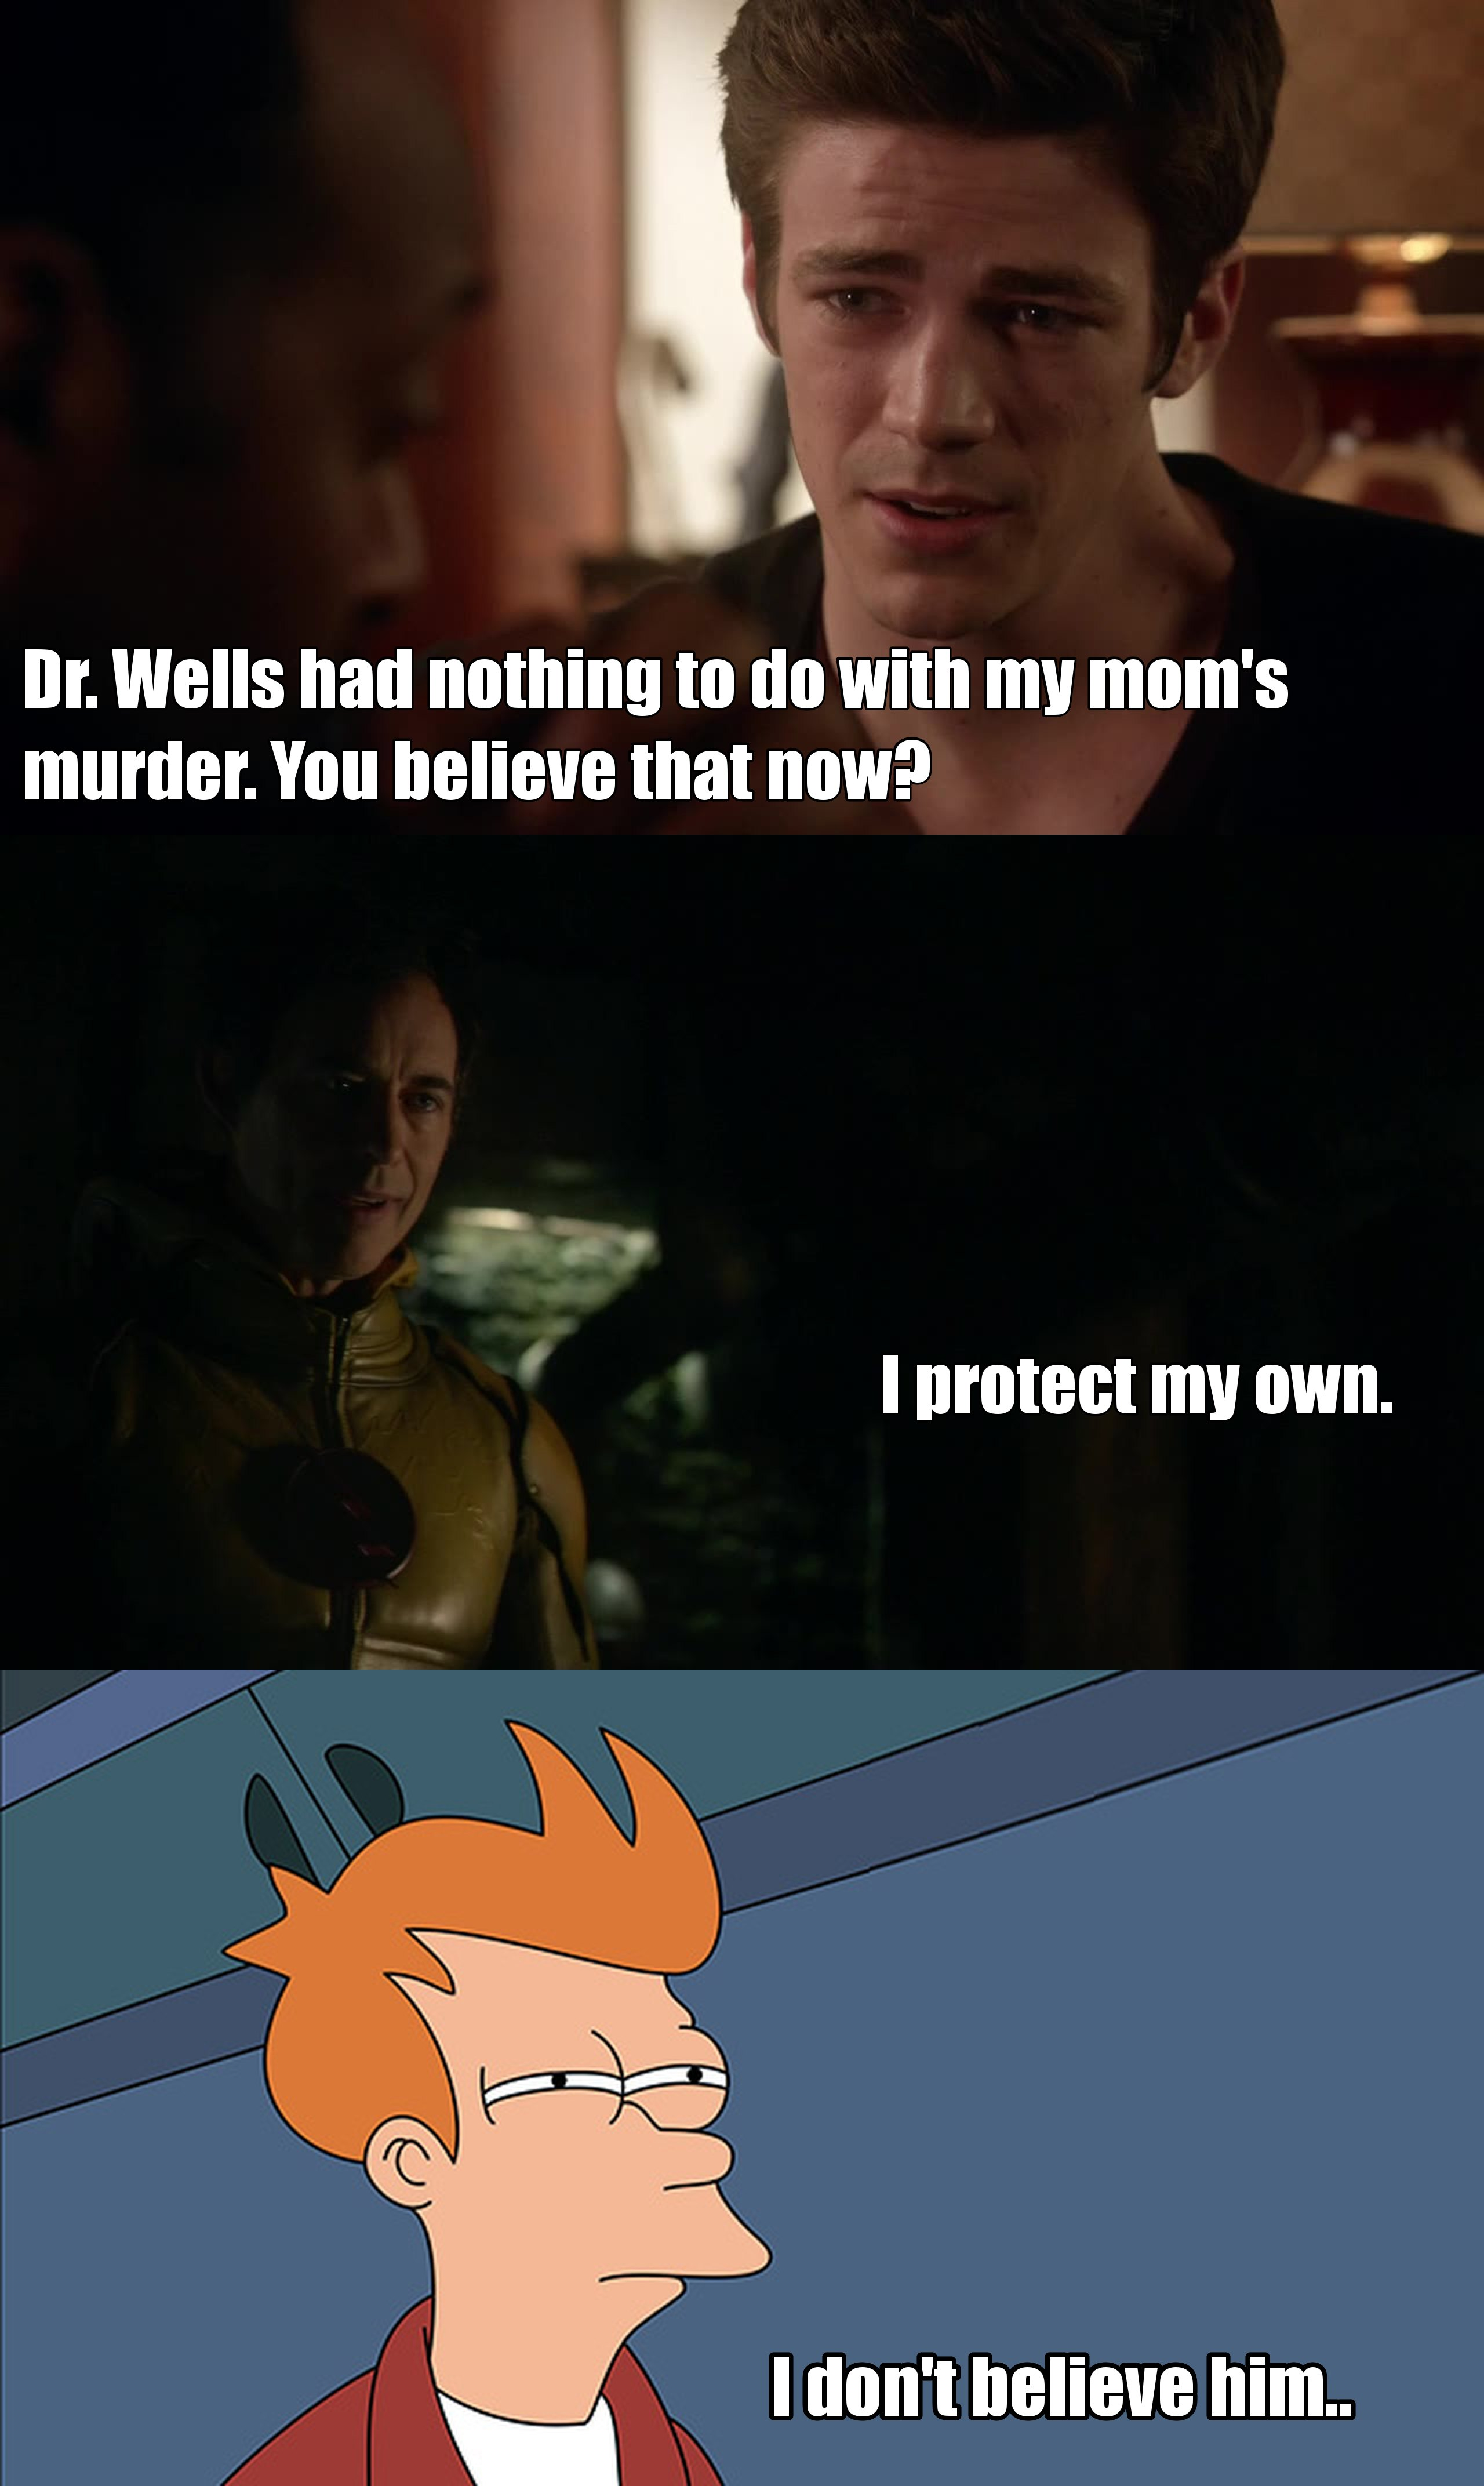 I think Barry believe too much in Dr Wells